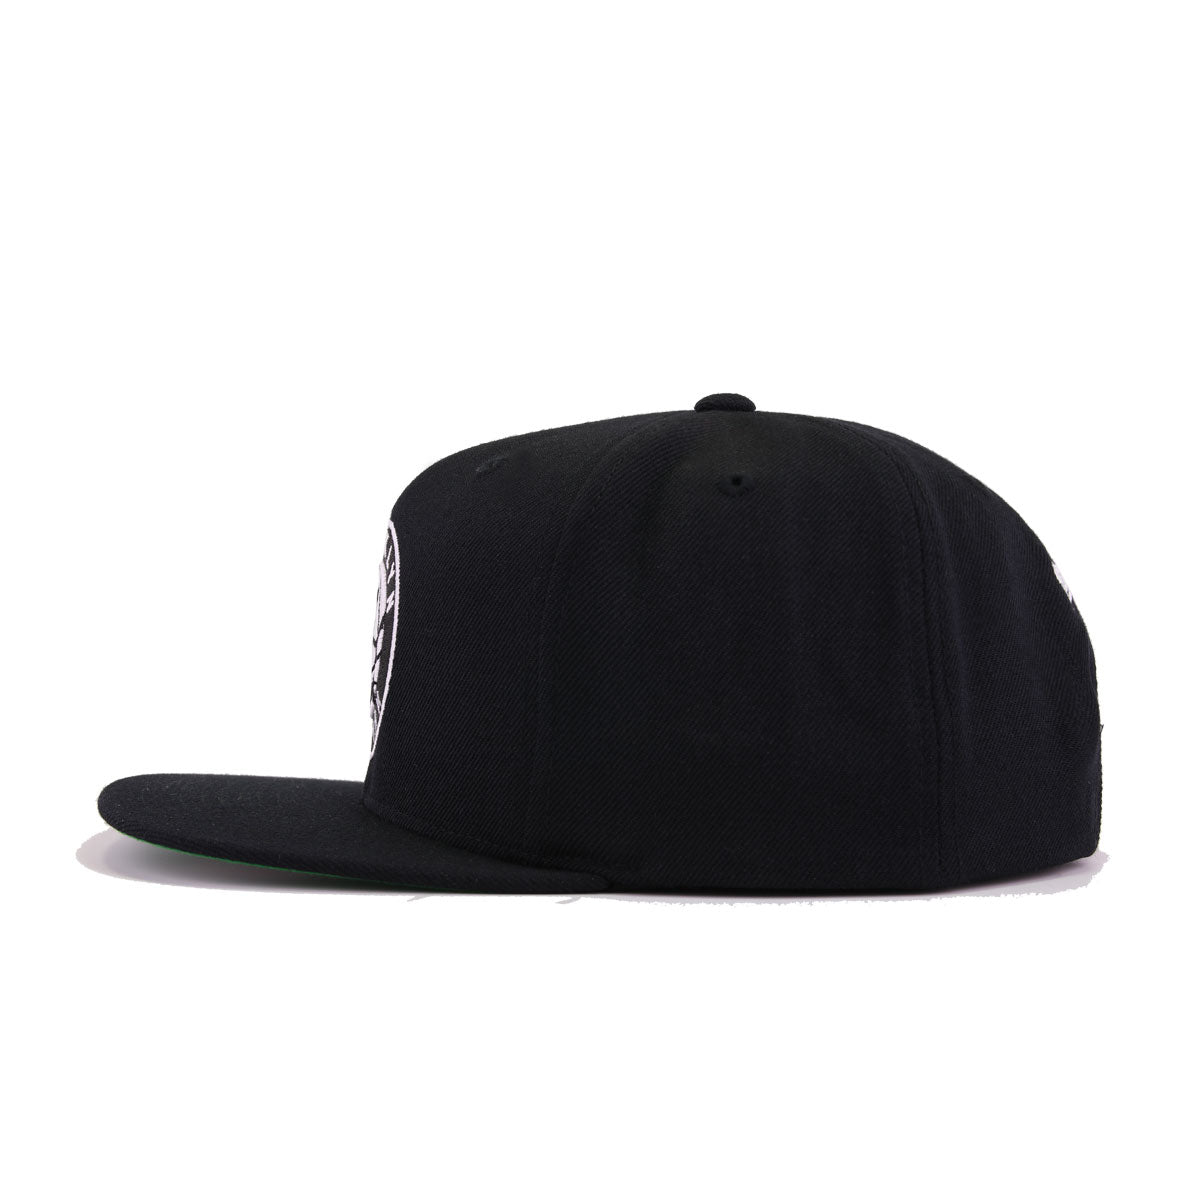 Brooklyn Nets Black Mitchell and Ness Snapback